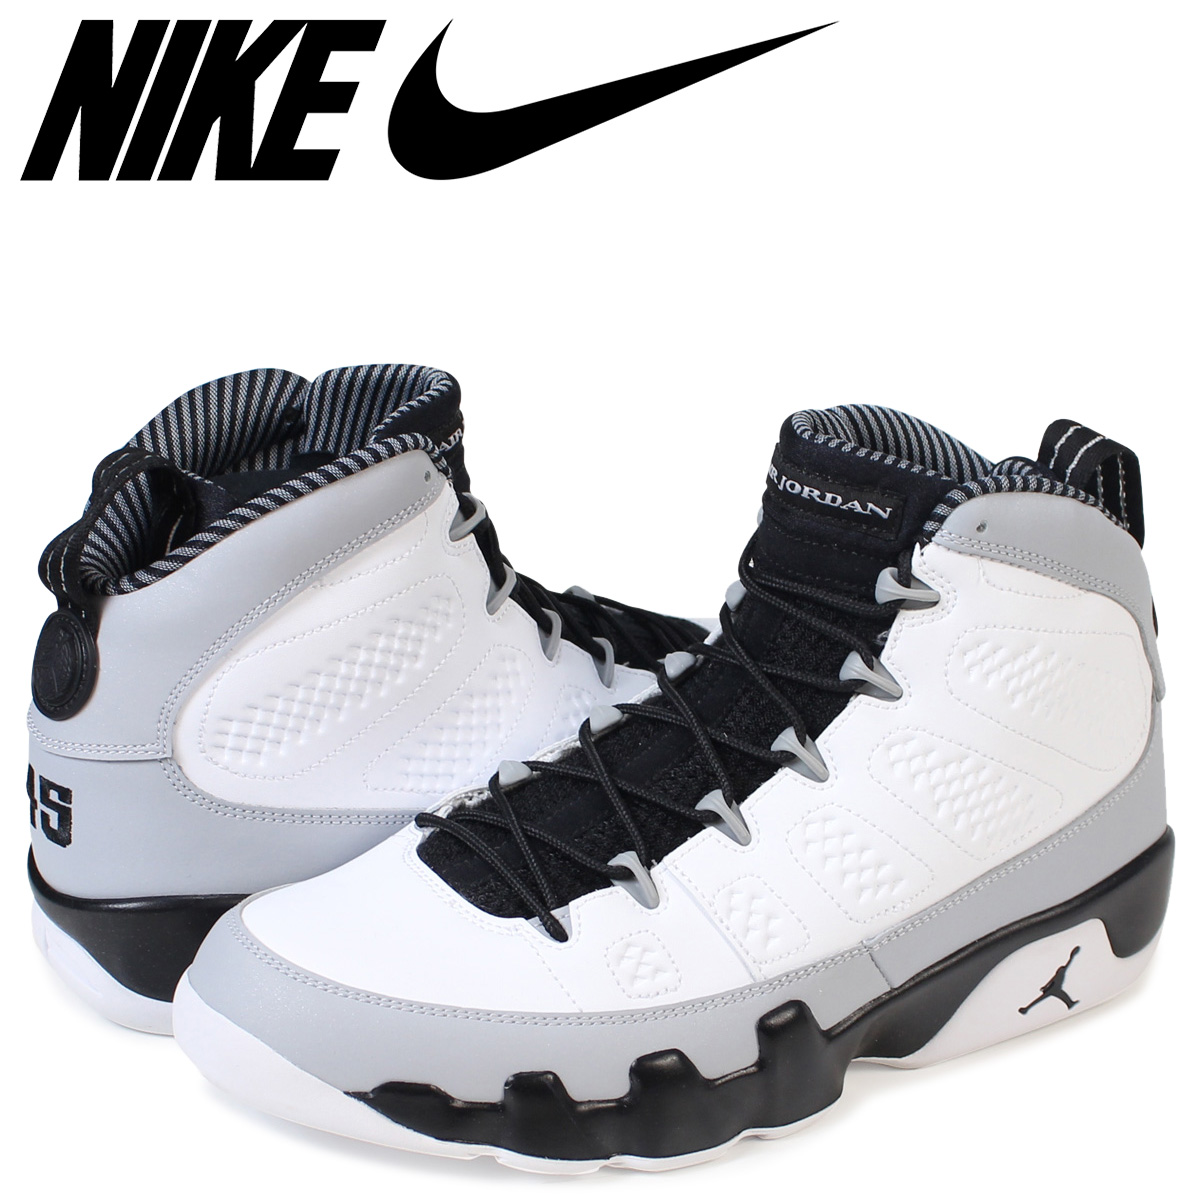 buy online 13c95 e84c2 NIKE Nike Air Jordan 9 nostalgic sneakers AIR JORDAN 9 RETRO BARONS  302,370-106 men s shoes white